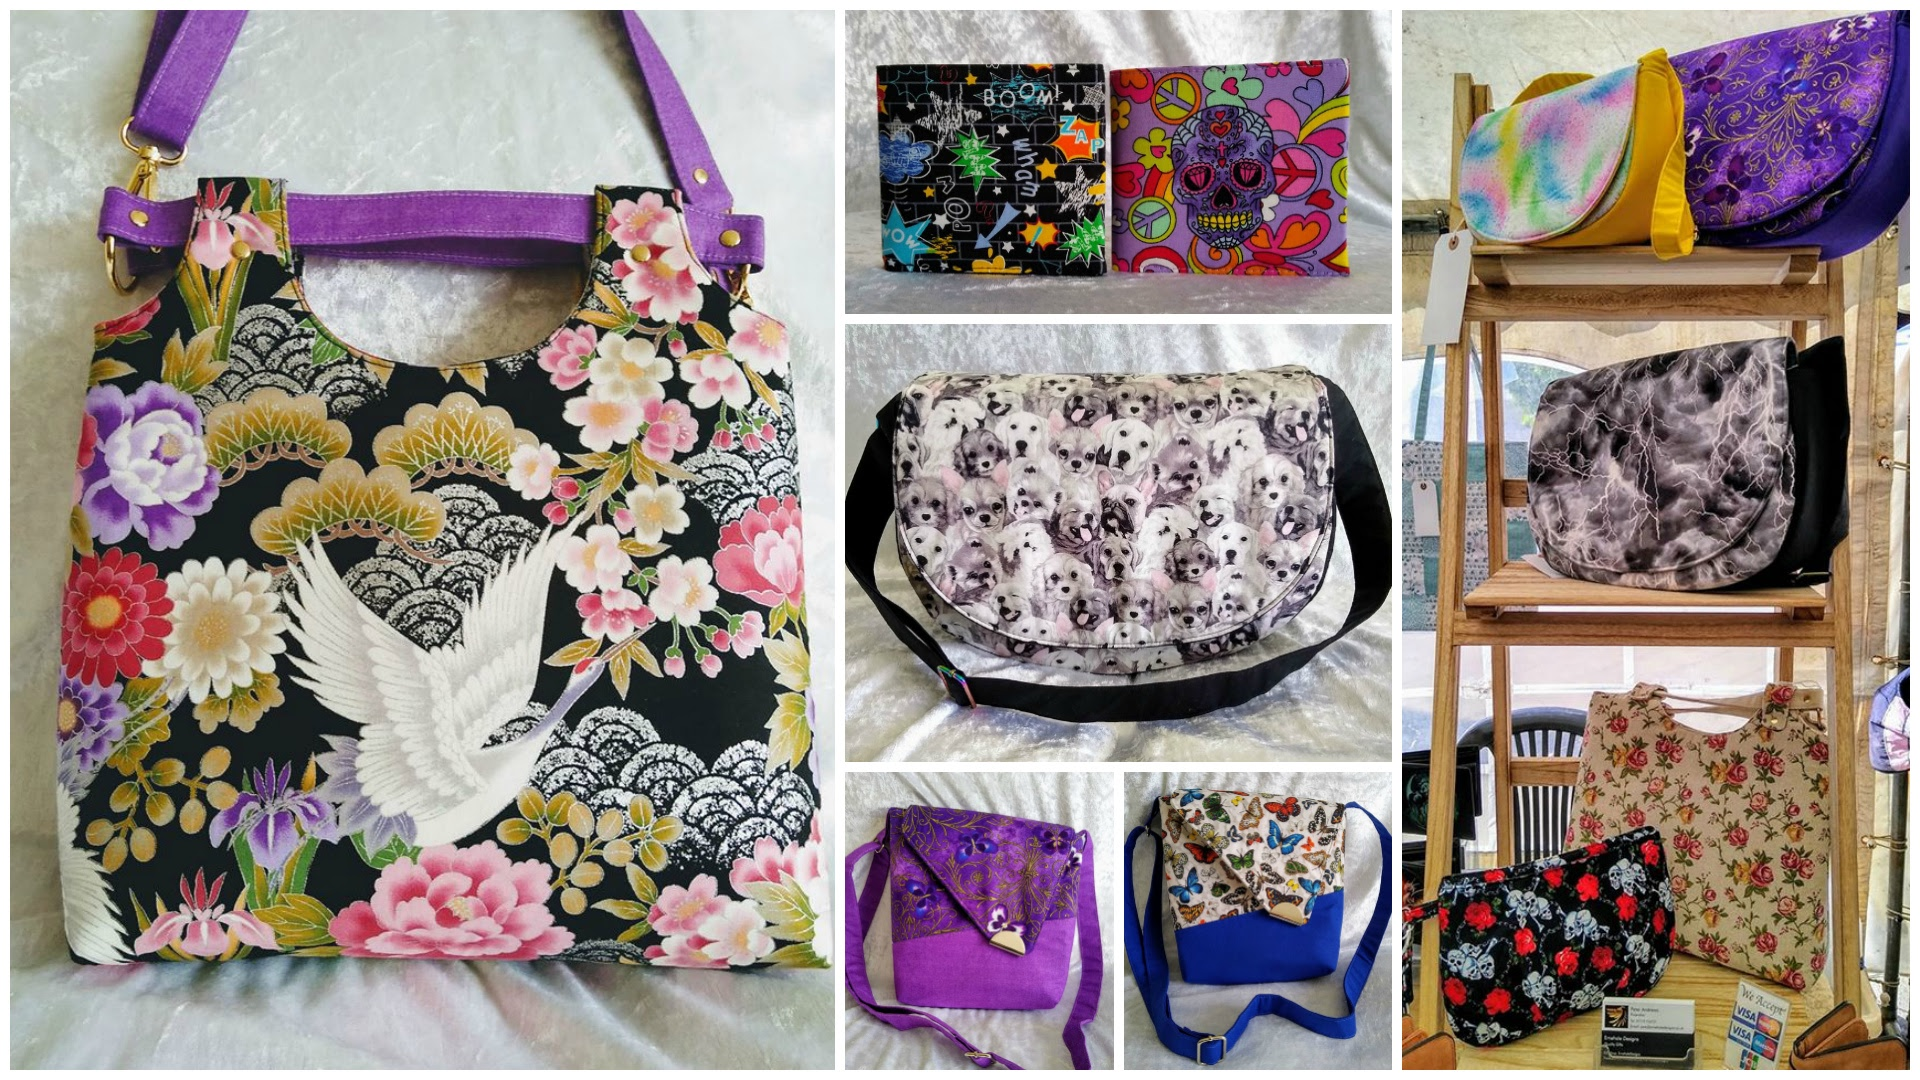 A collage of bags made by Peter Andrews of Ernehale Designs